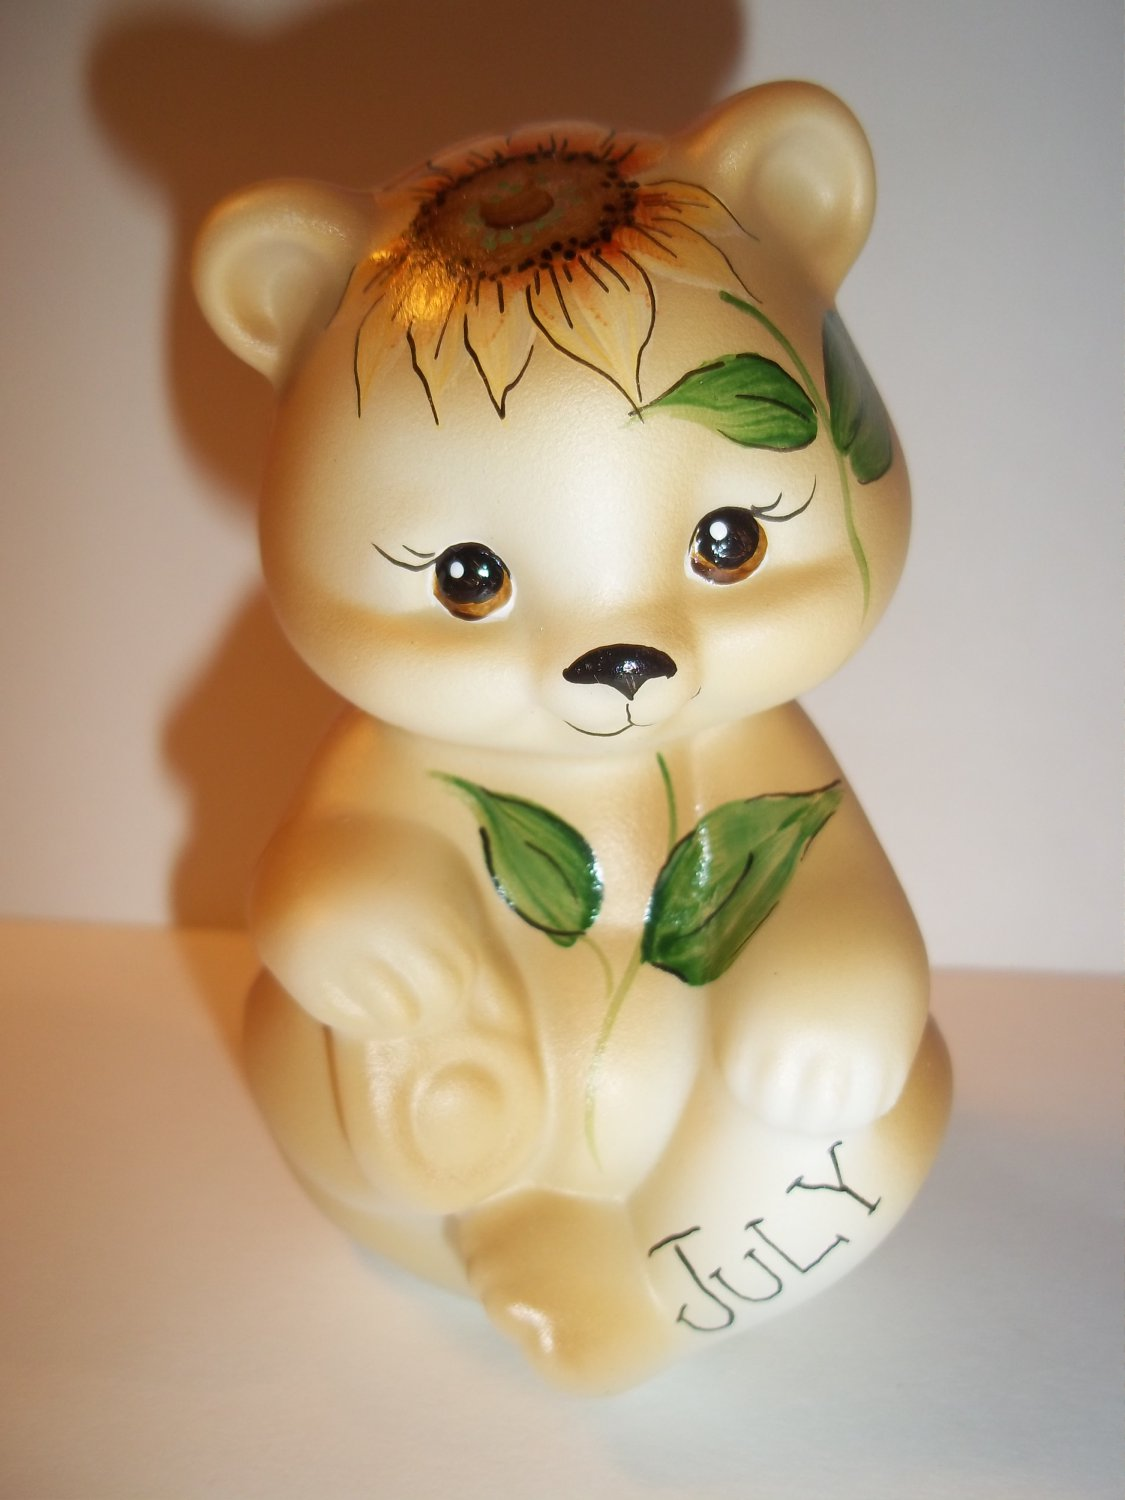 Fenton Glass July Birthday Sunflower Sitting BEAR Figurine GSE K Barley Limited Edition #21